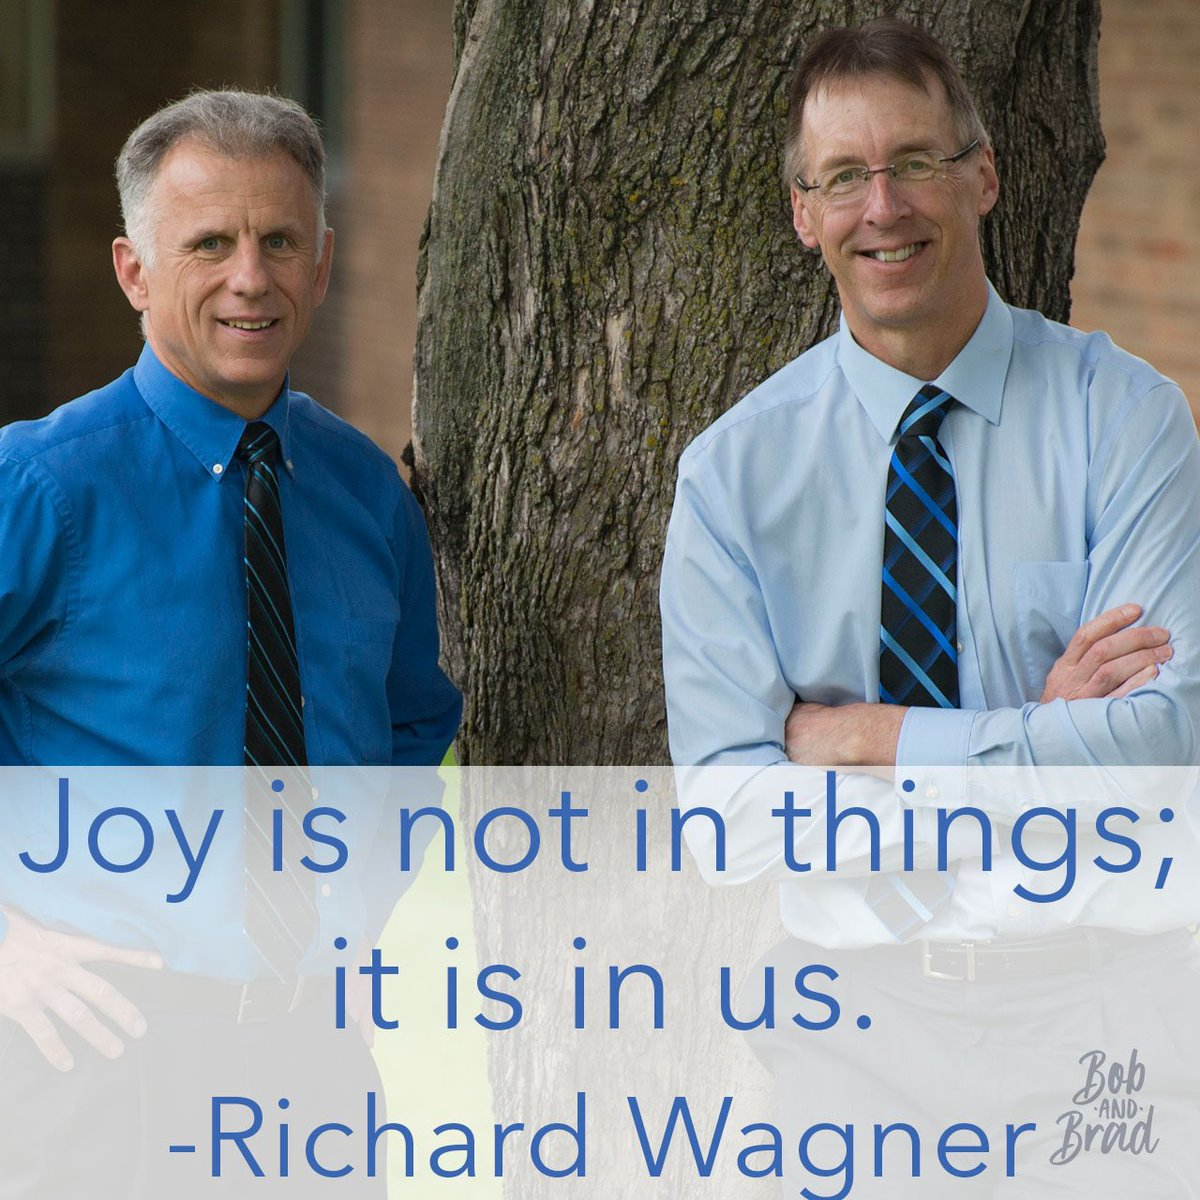 Quote of the day from Bob and Brad! #BobandBrad #FamousPT #healthy #fit #painfree #physicalTherapy #fitness #Quote #quotes